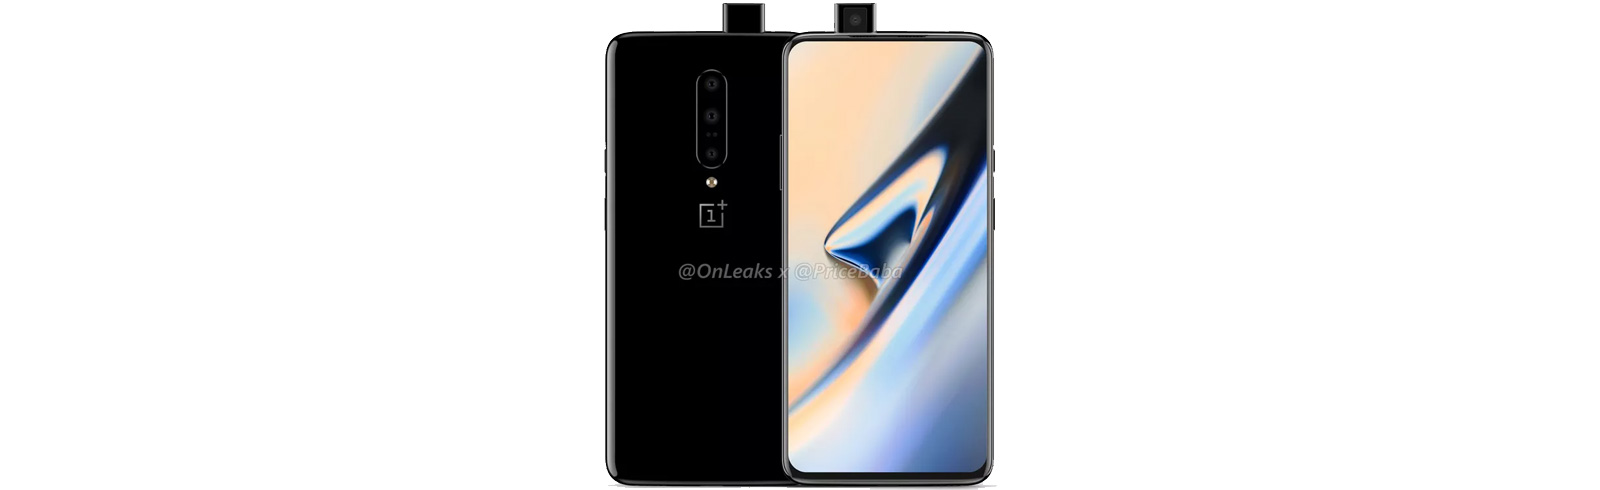 OnePlus 7T and OnePlus 7T Pro full specifications leak